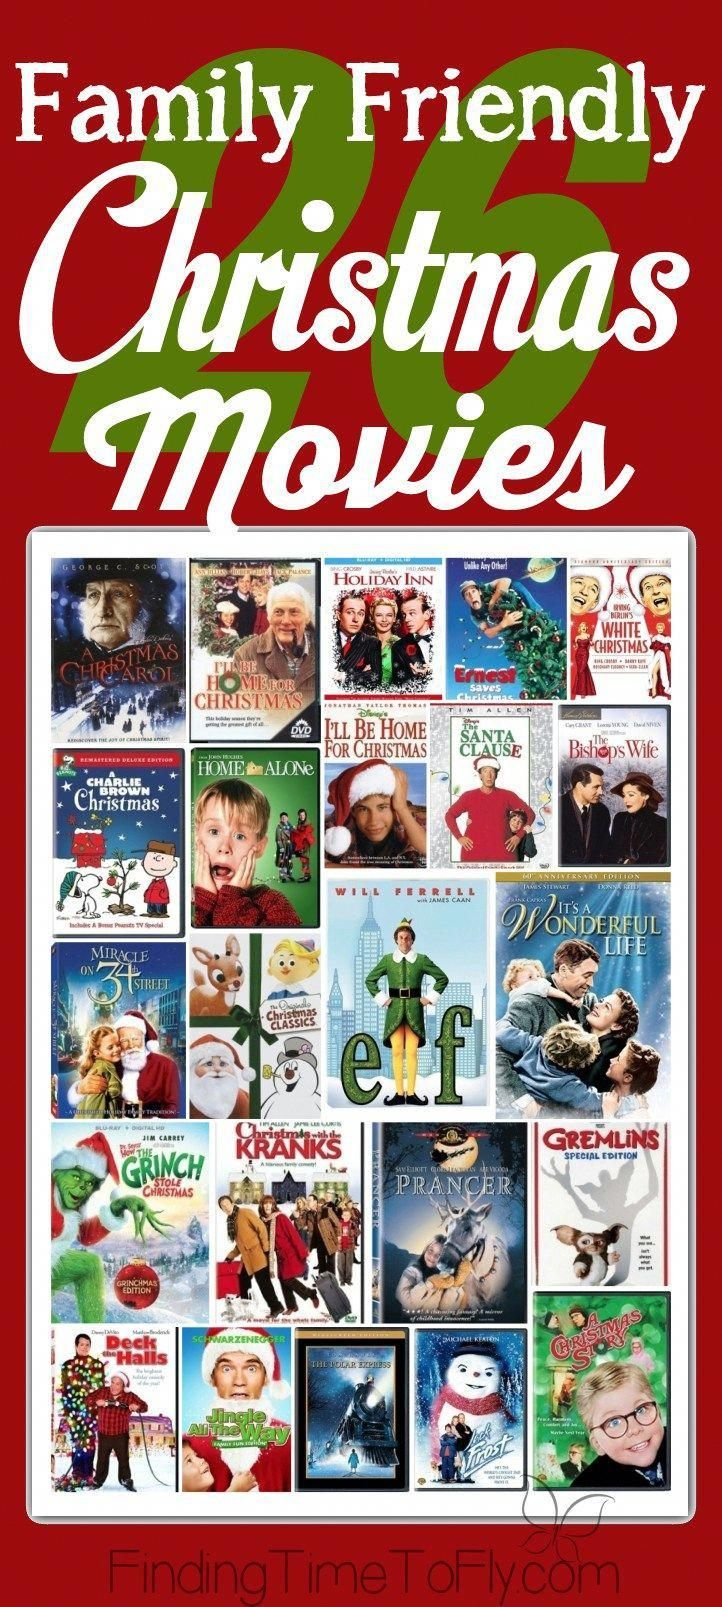 26 Family Friendly Christmas Movies In 2020 Christmas Movies Christmas Holidays Christmas Movies List